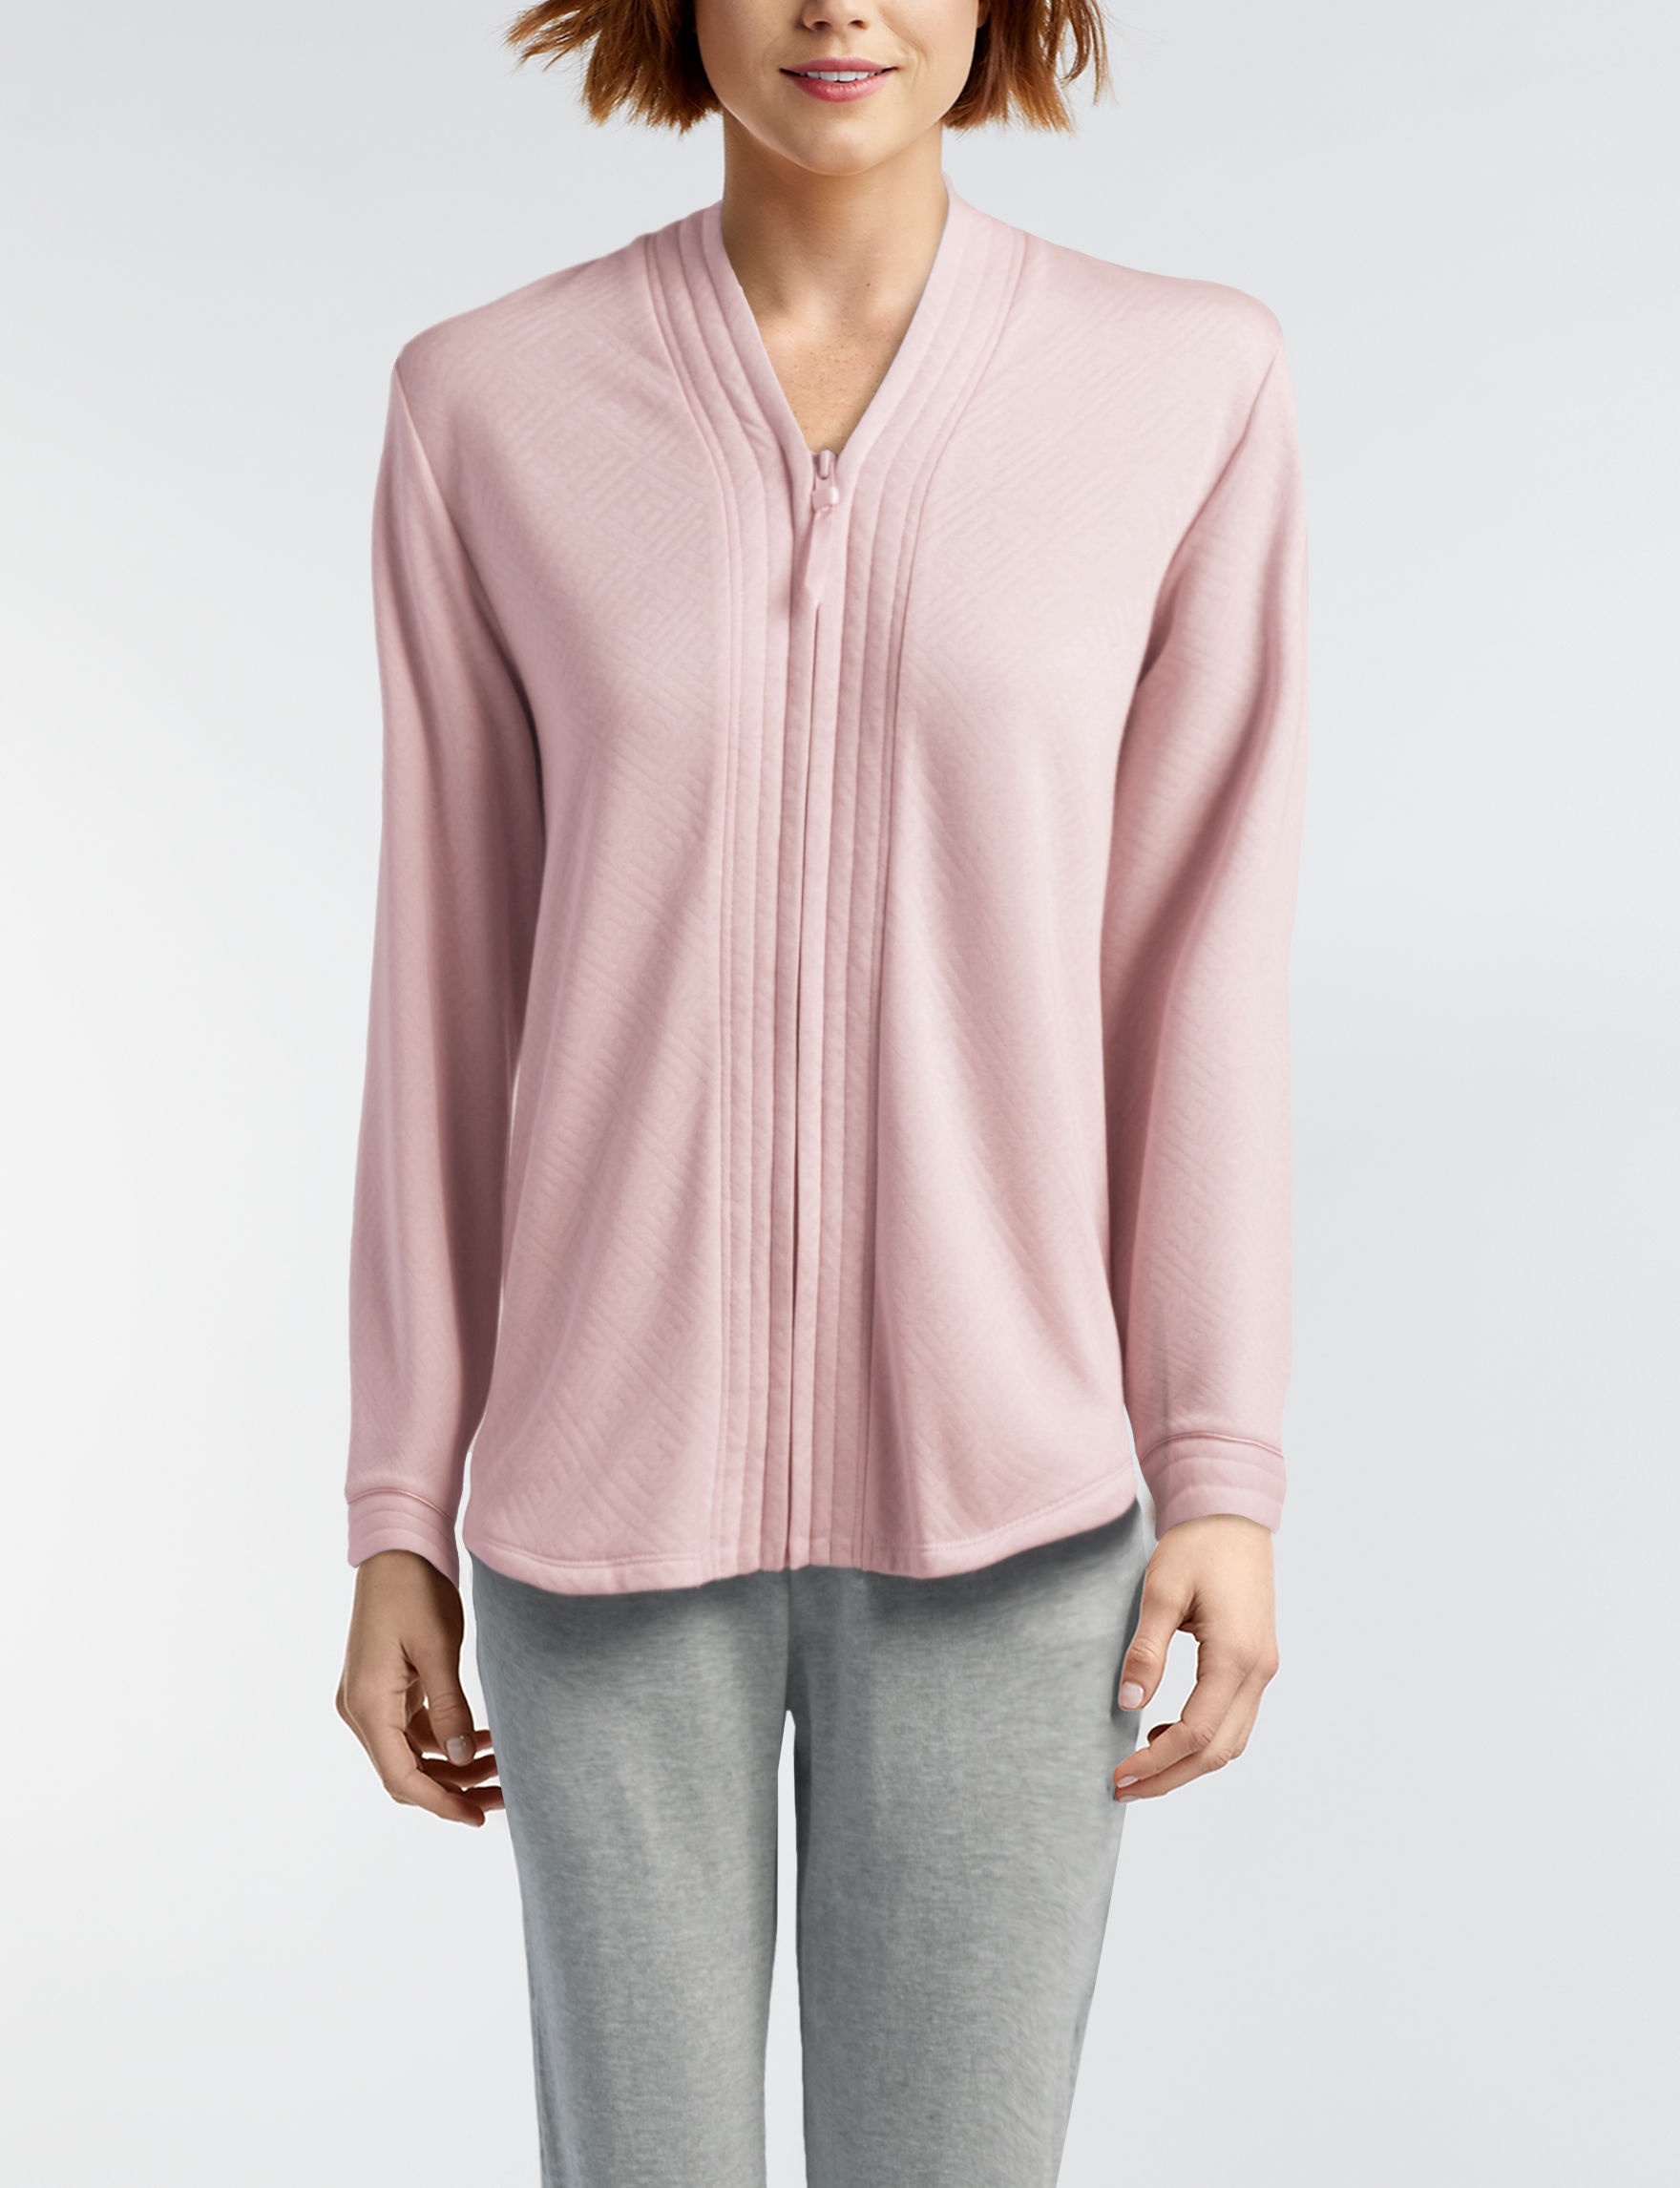 Lissome Pink Robes, Wraps & Dusters